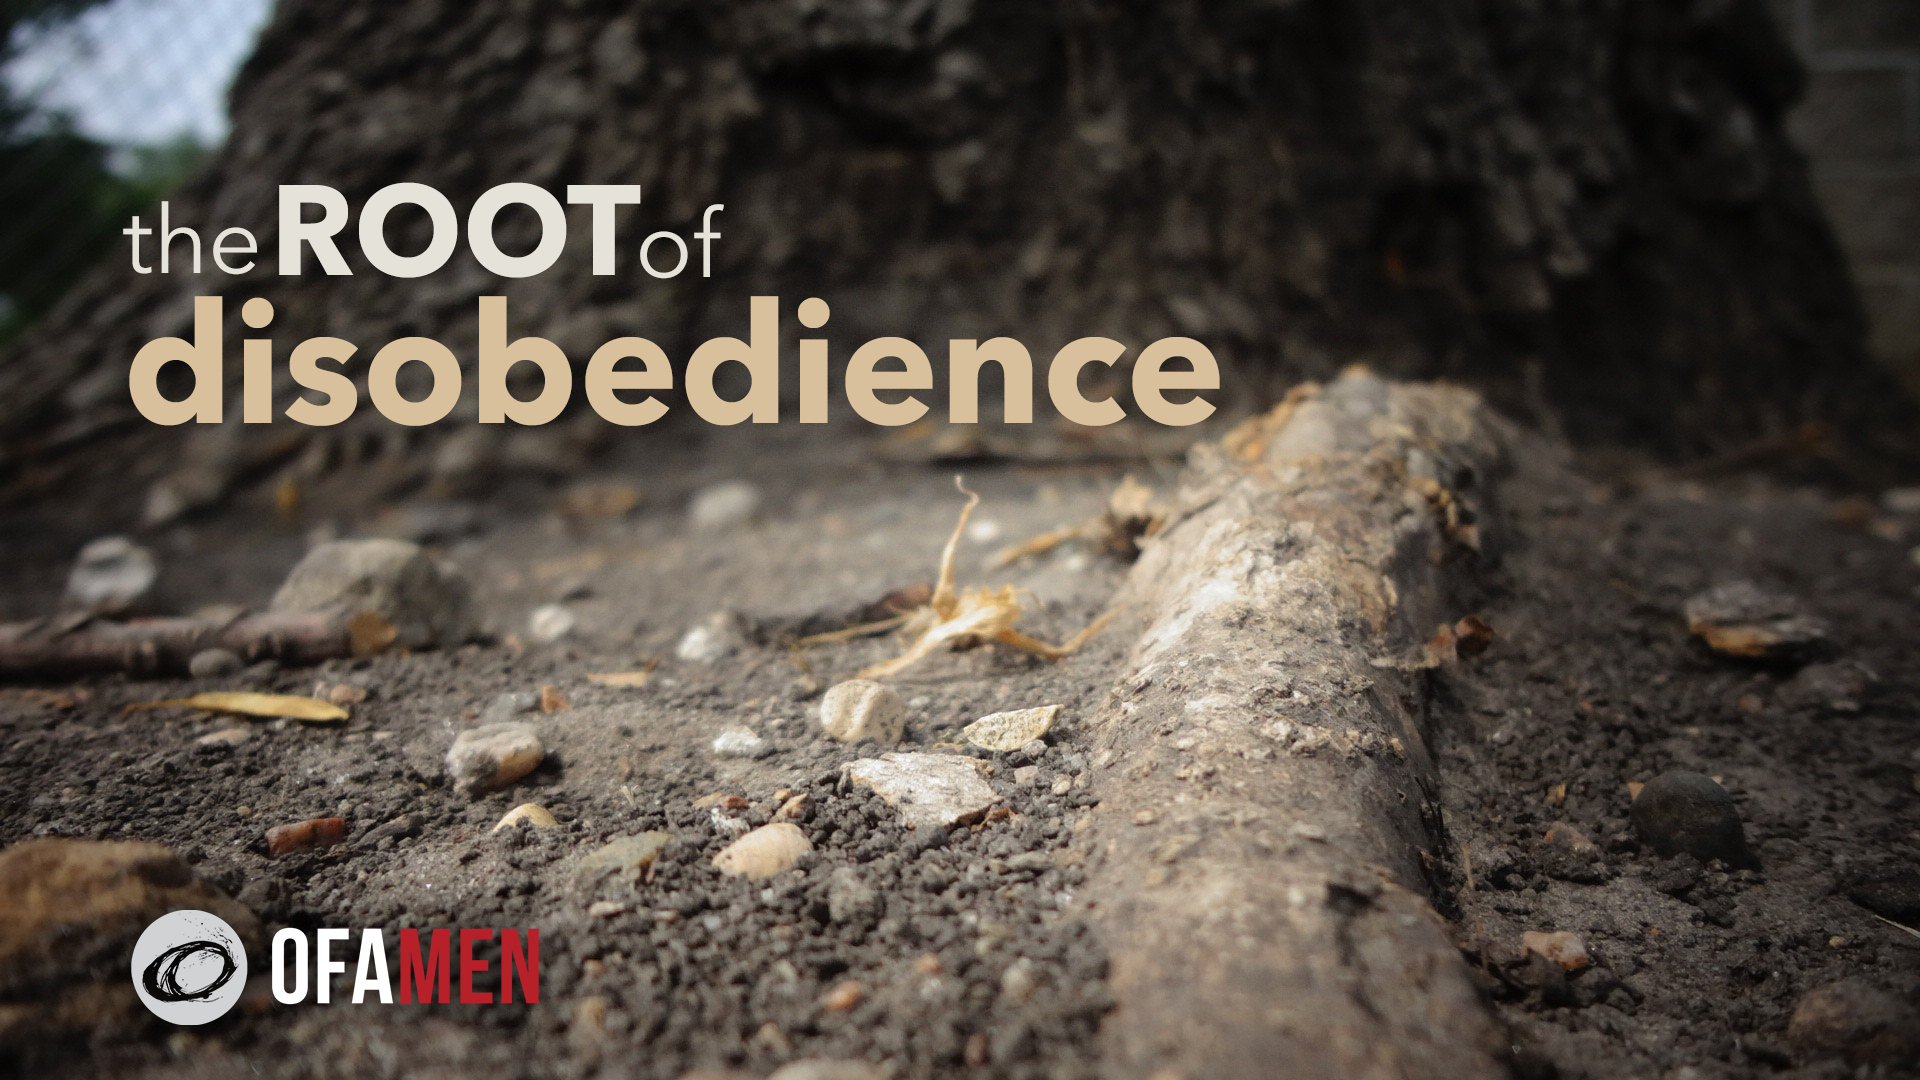 The Root of Disobedience